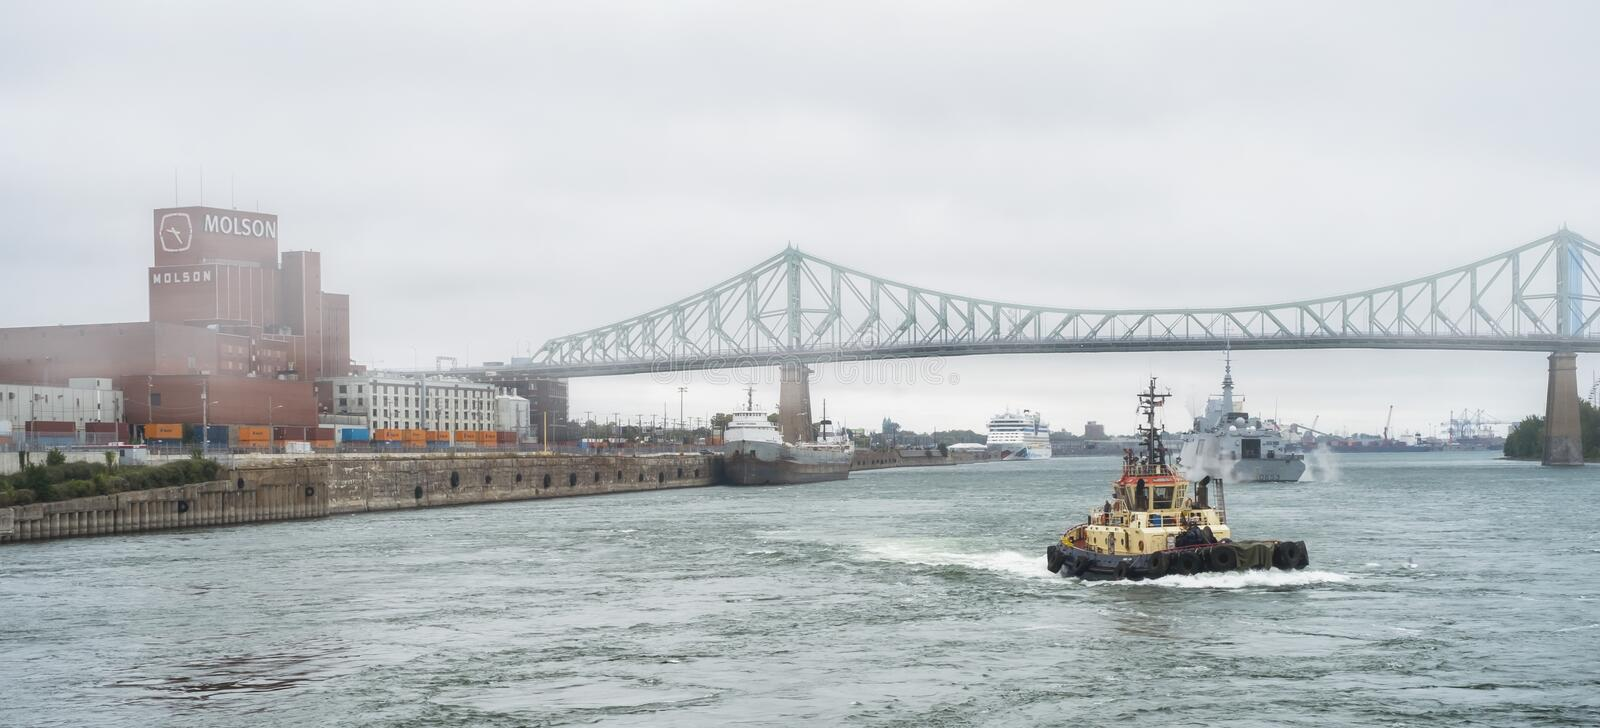 FREMM Languedoc & Svitzer Cartier tugboat. The FREMM multi-mission frigate Languedoc in fog carried out a four-day port visit in Montréal from September 24th royalty free stock image